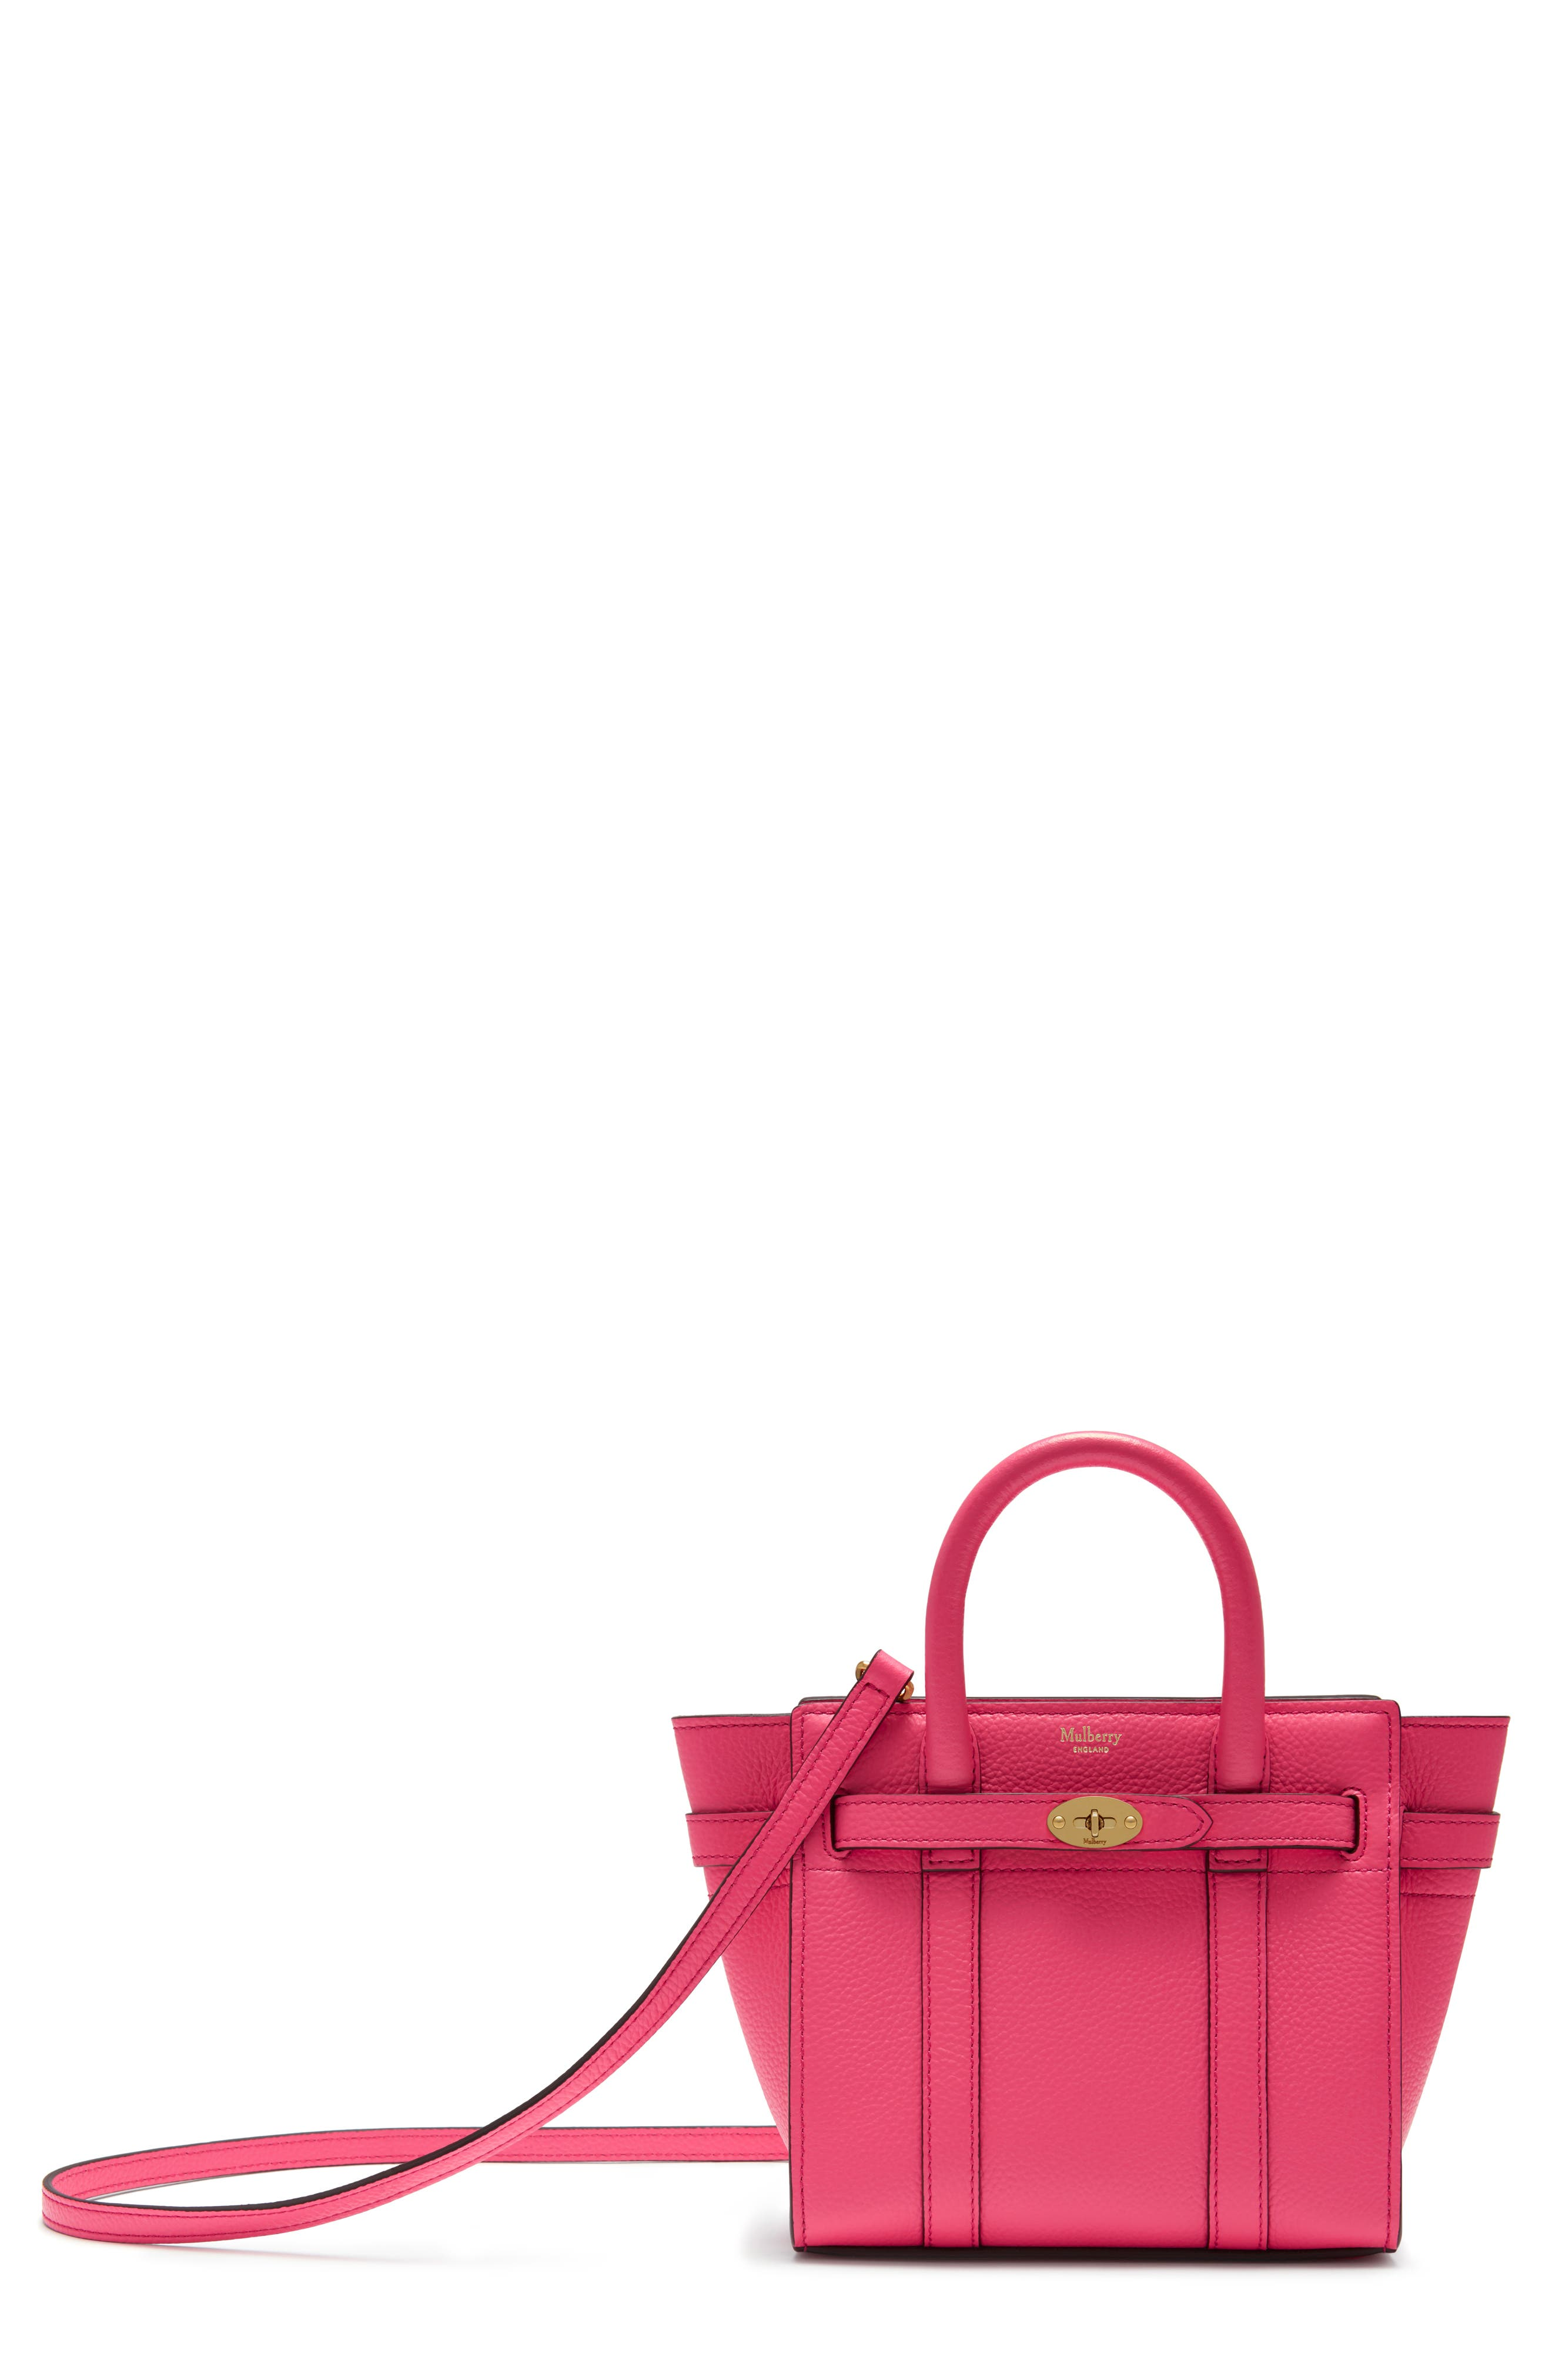 MULBERRY Micro Bayswater Leather Satchel - Pink in Fluro Pink